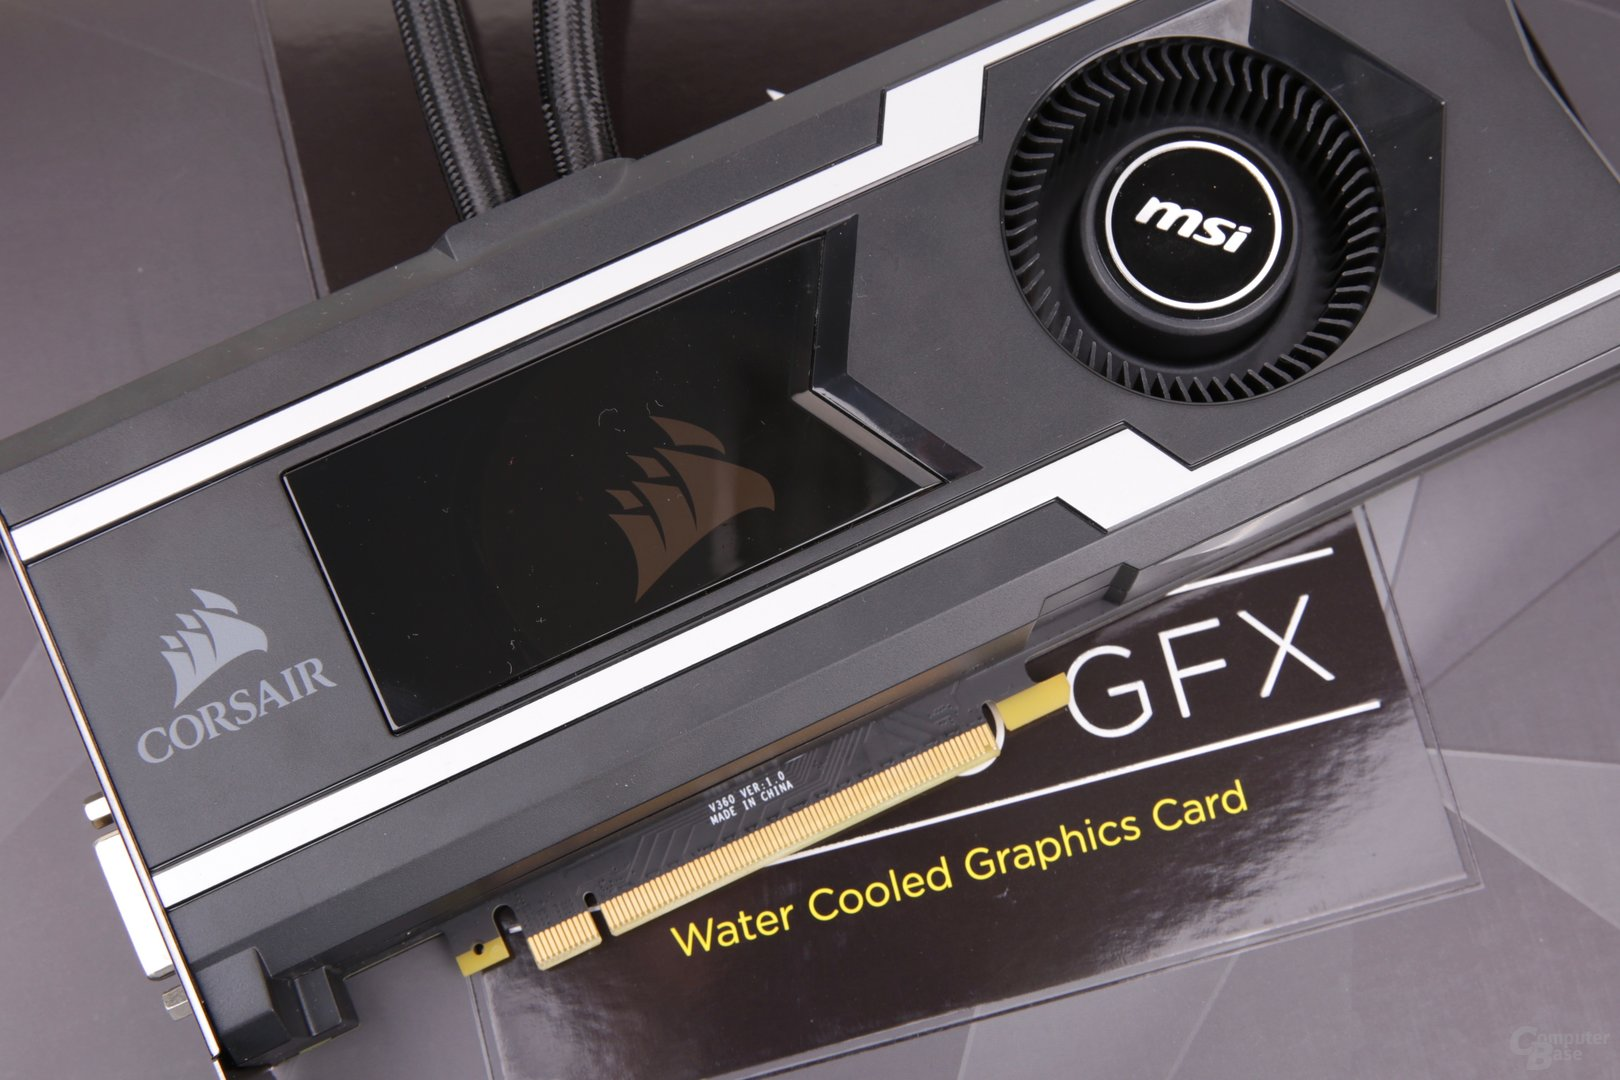 Die Corsair Hydro GFX GeForce GTX 1080 Ti im Test